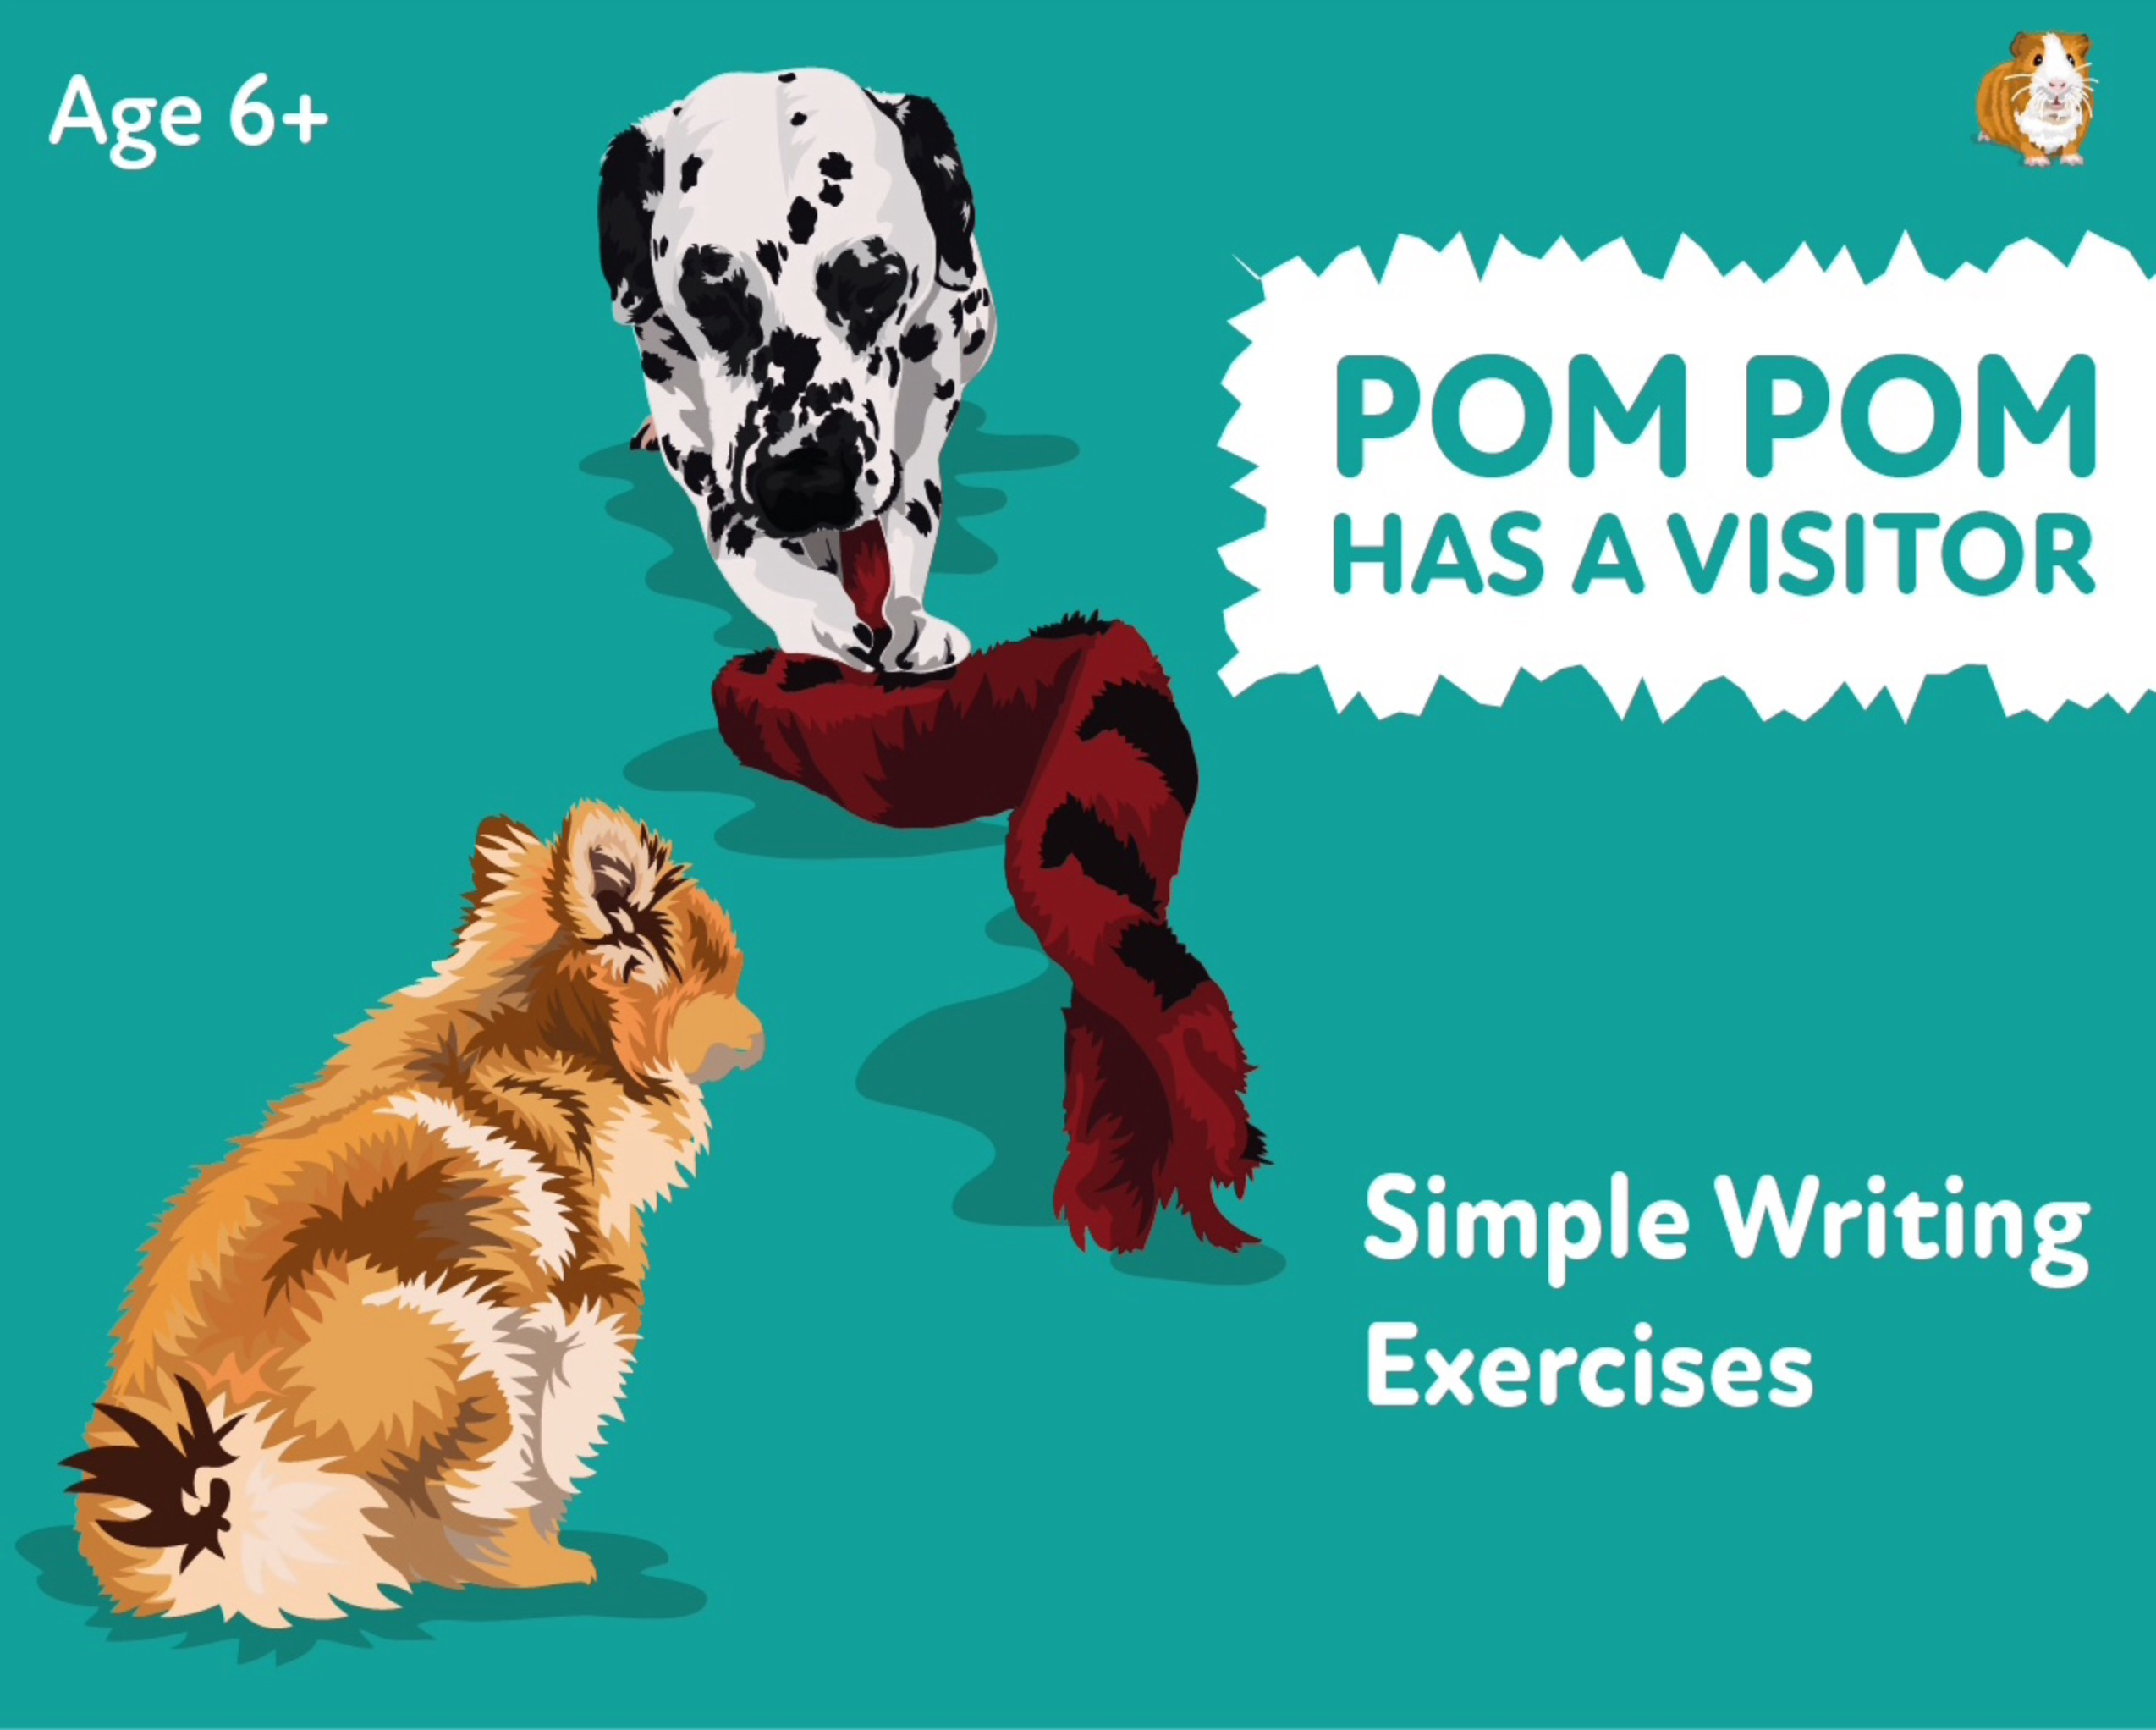 'Pom Pom Has A Visitor' A Fun Writing And Drawing Activity (6 years +)